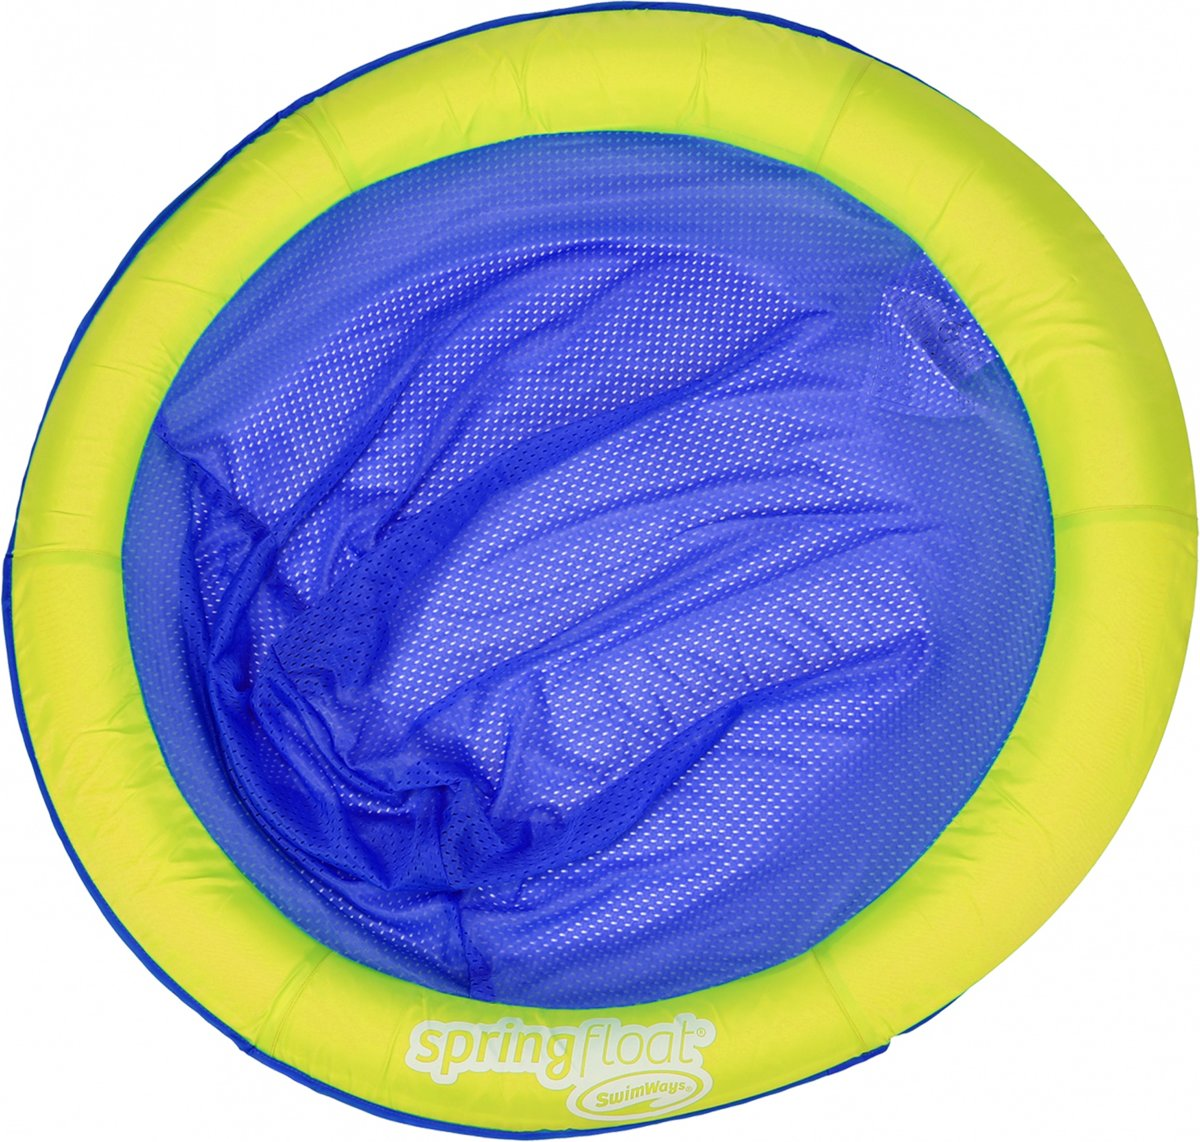 Swimways Luchtbed Spring Float Papasan 90 Cm Groen/donkerblauw